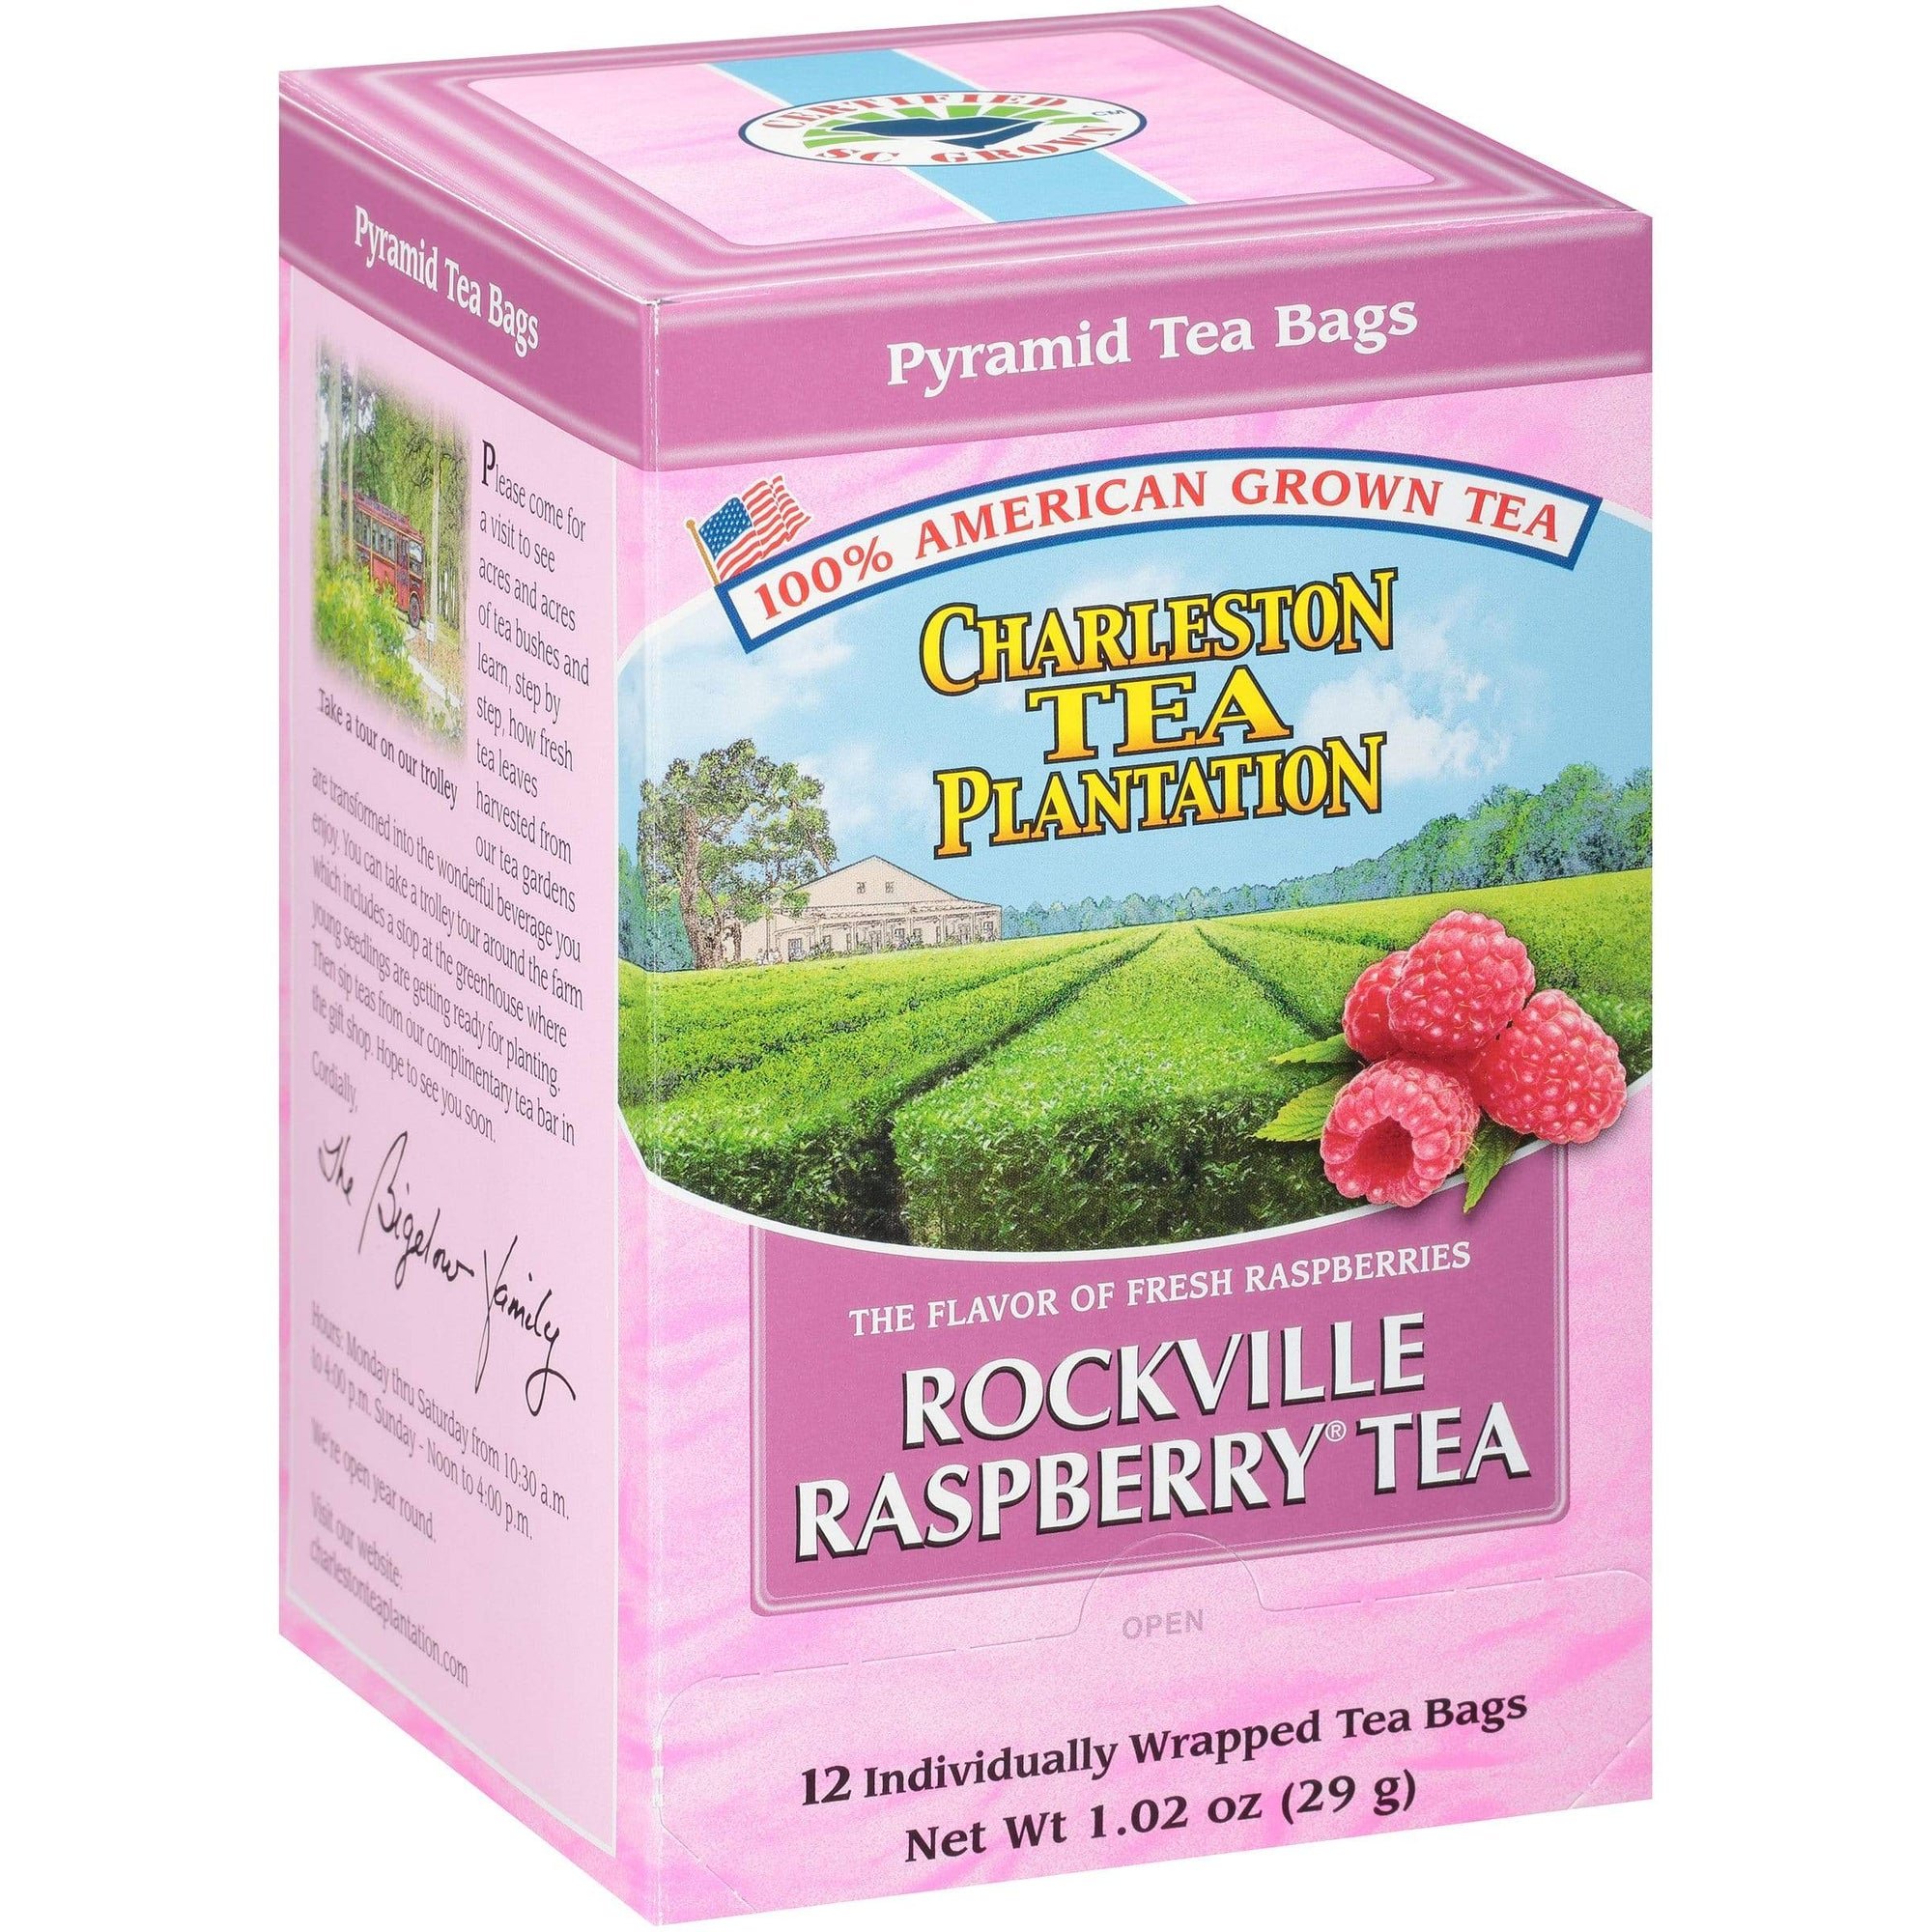 Charleston Tea Plantation Rockville Raspberry Tea (100% American)-VIVA Scandinavia